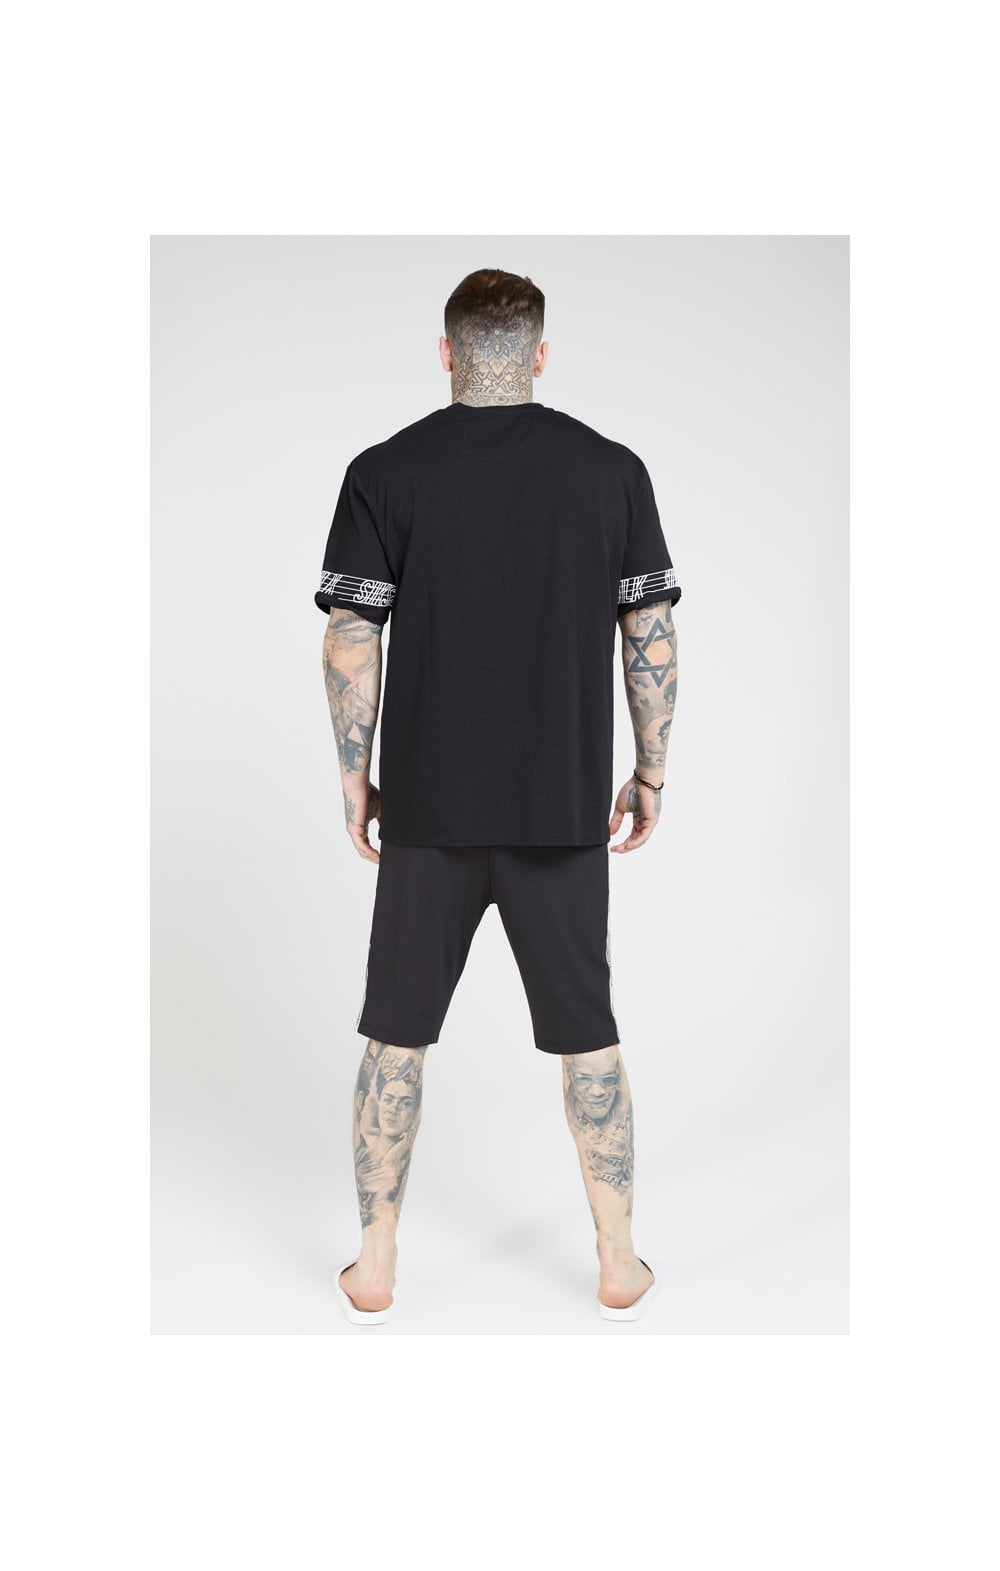 SikSilk Zonal Runner Shorts - Black (7)